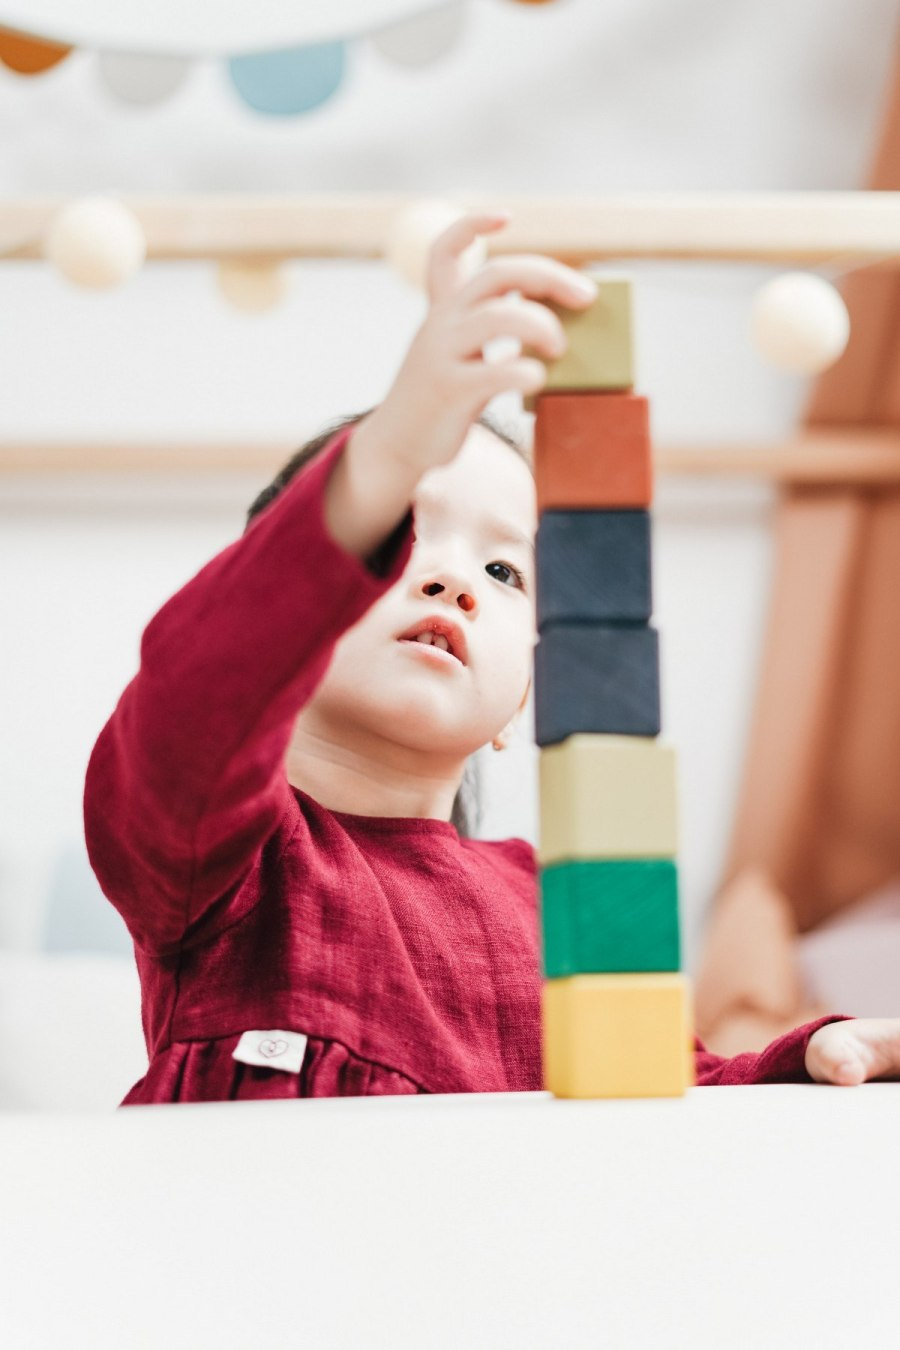 Many early childhood educators believe that every classroom should have a full set of unit blocks, assorted props tied to children's current interests and experiences, open storage shelves, and plenty of space and time to build and rebuild invented and familiar structures.